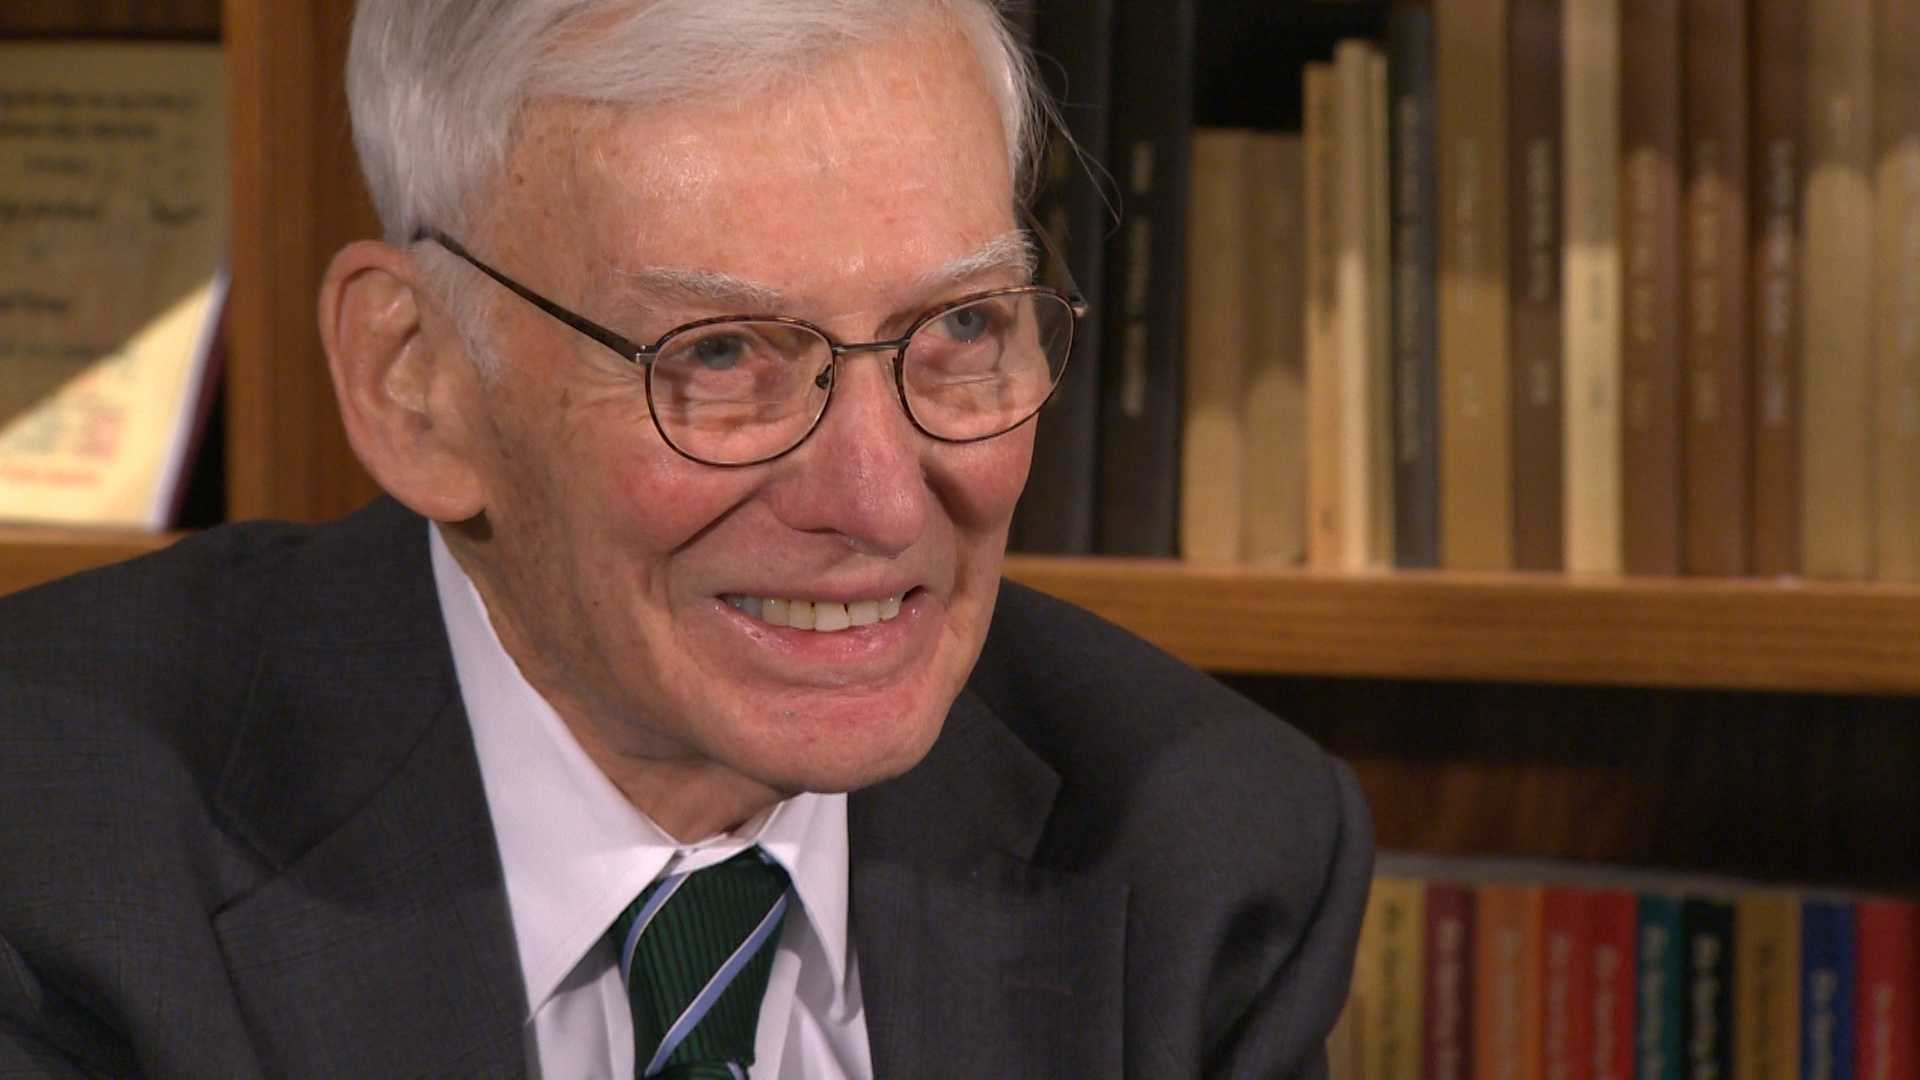 Steelers chairman Dan Rooney